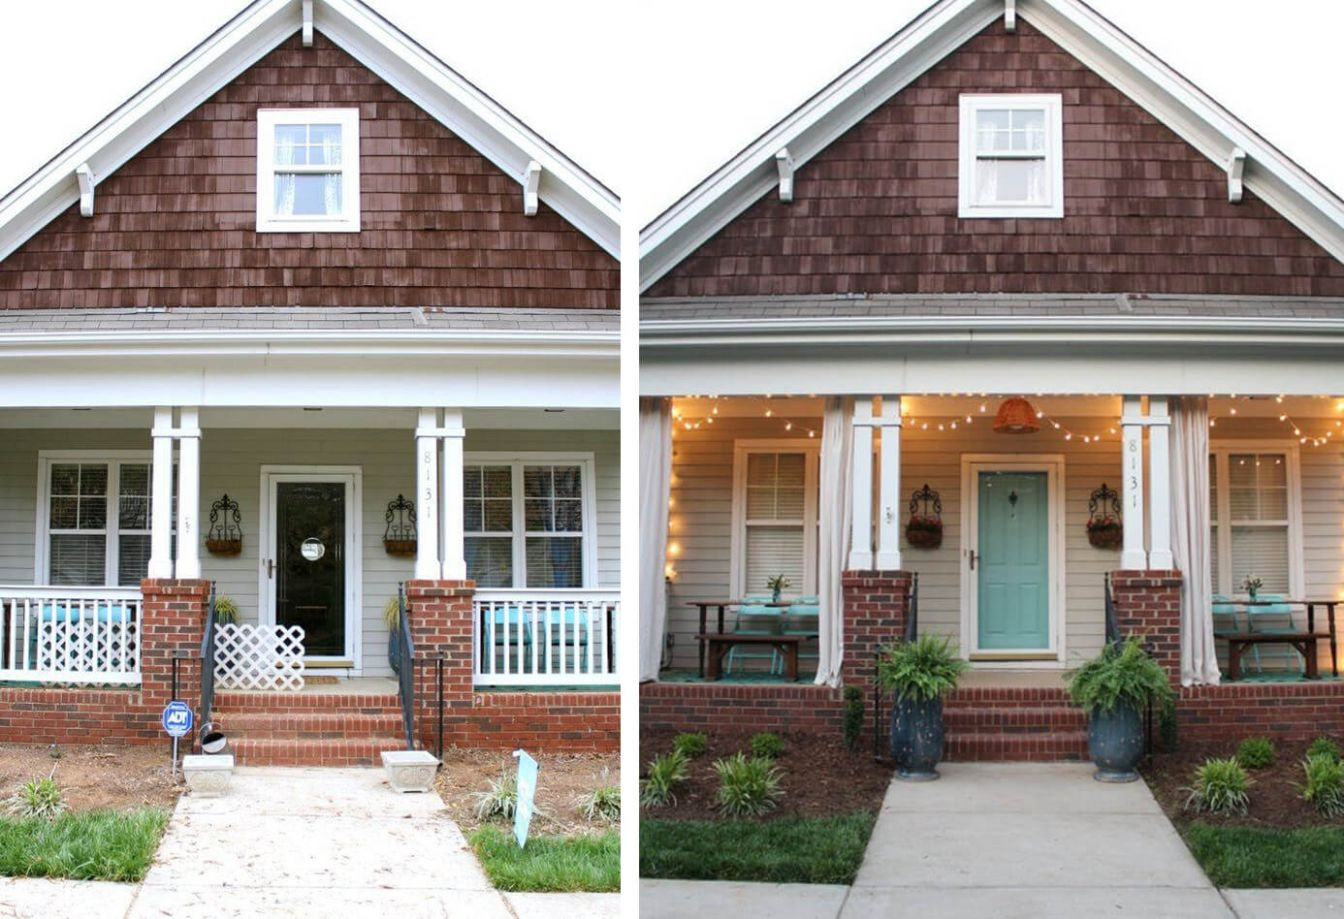 11 Best Porch Makeover Ideas and Projects for 11 - front porch upgrade ideas